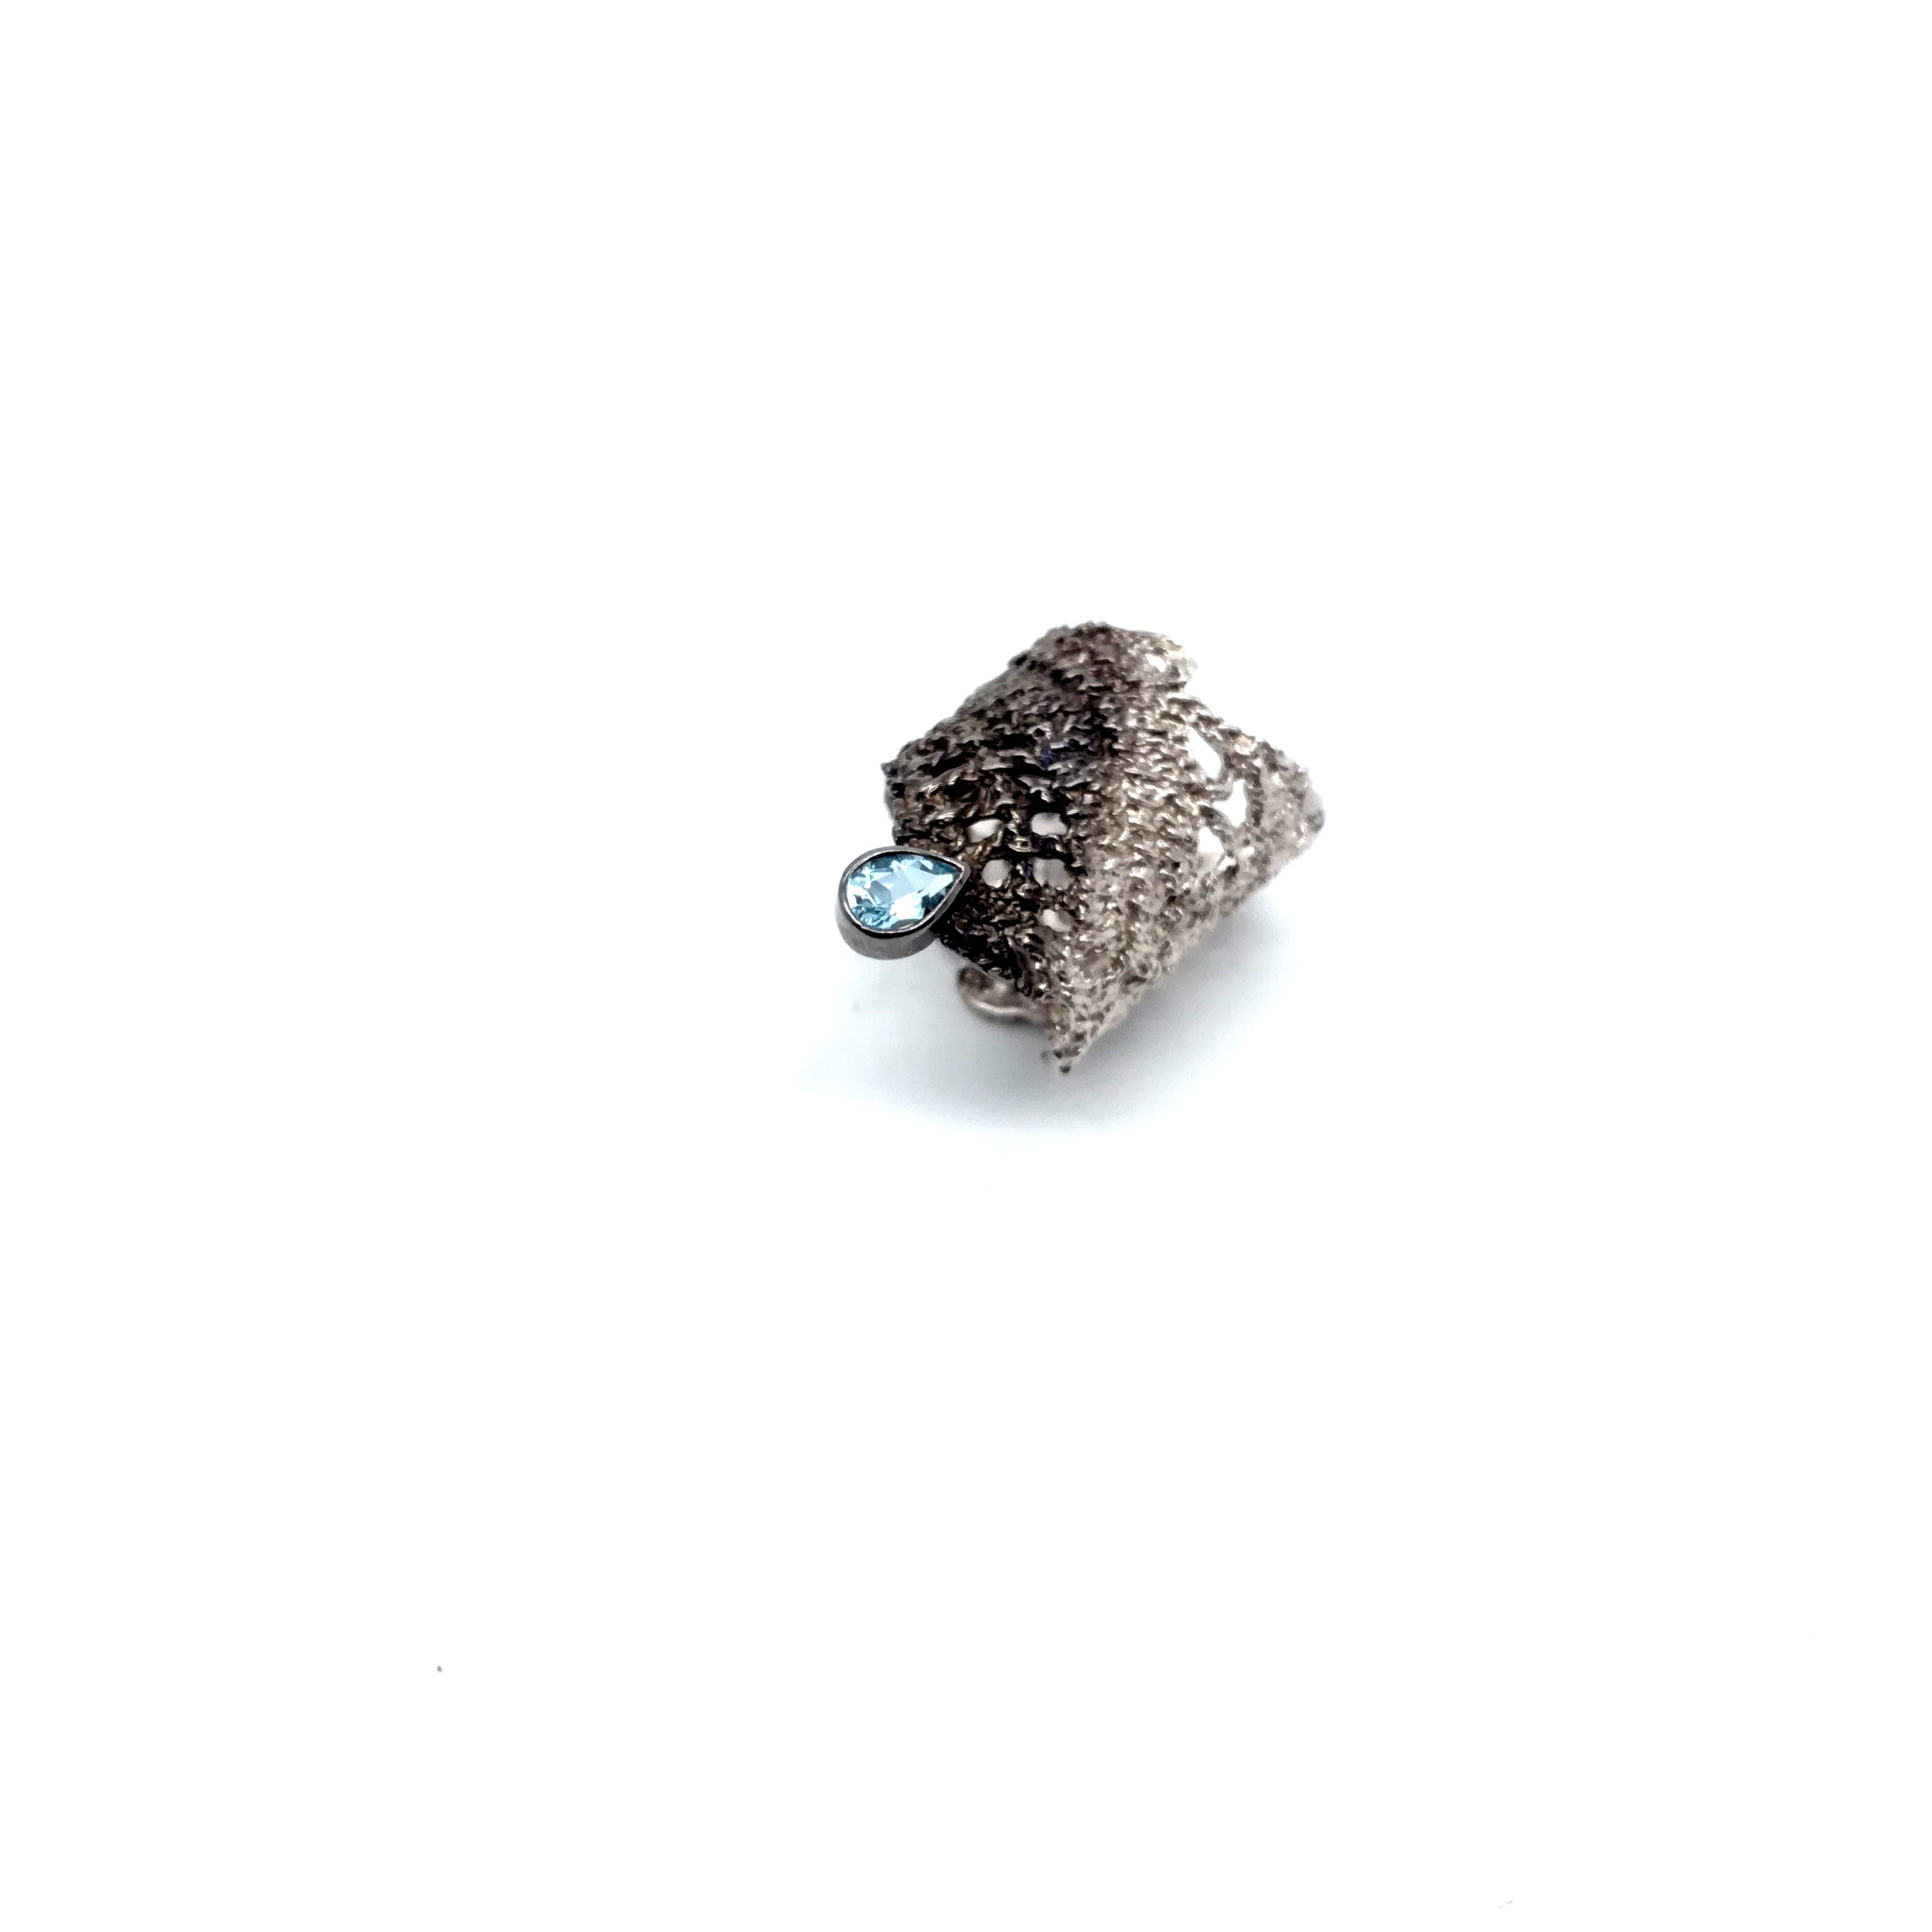 Silver handmade ring in sterling silver rhodium, black rhodium or gold plated with synthetic stone